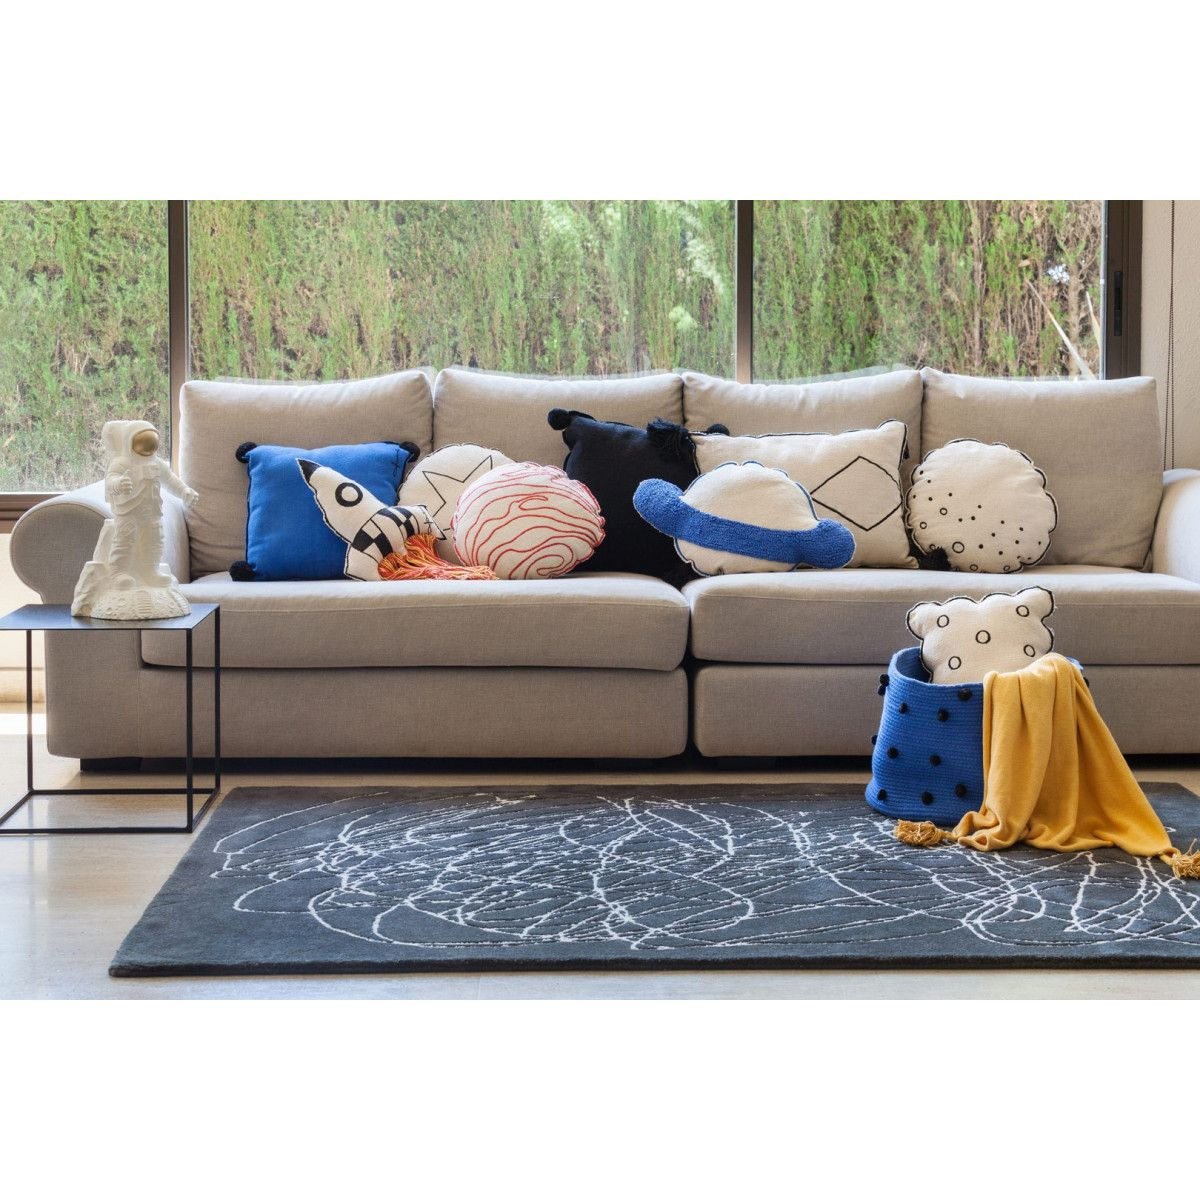 Tapis Raye Moderne Scribble Lorena Canals Taille 170x240 Cm Products In 2019 Tapis Raye Tapis Velours